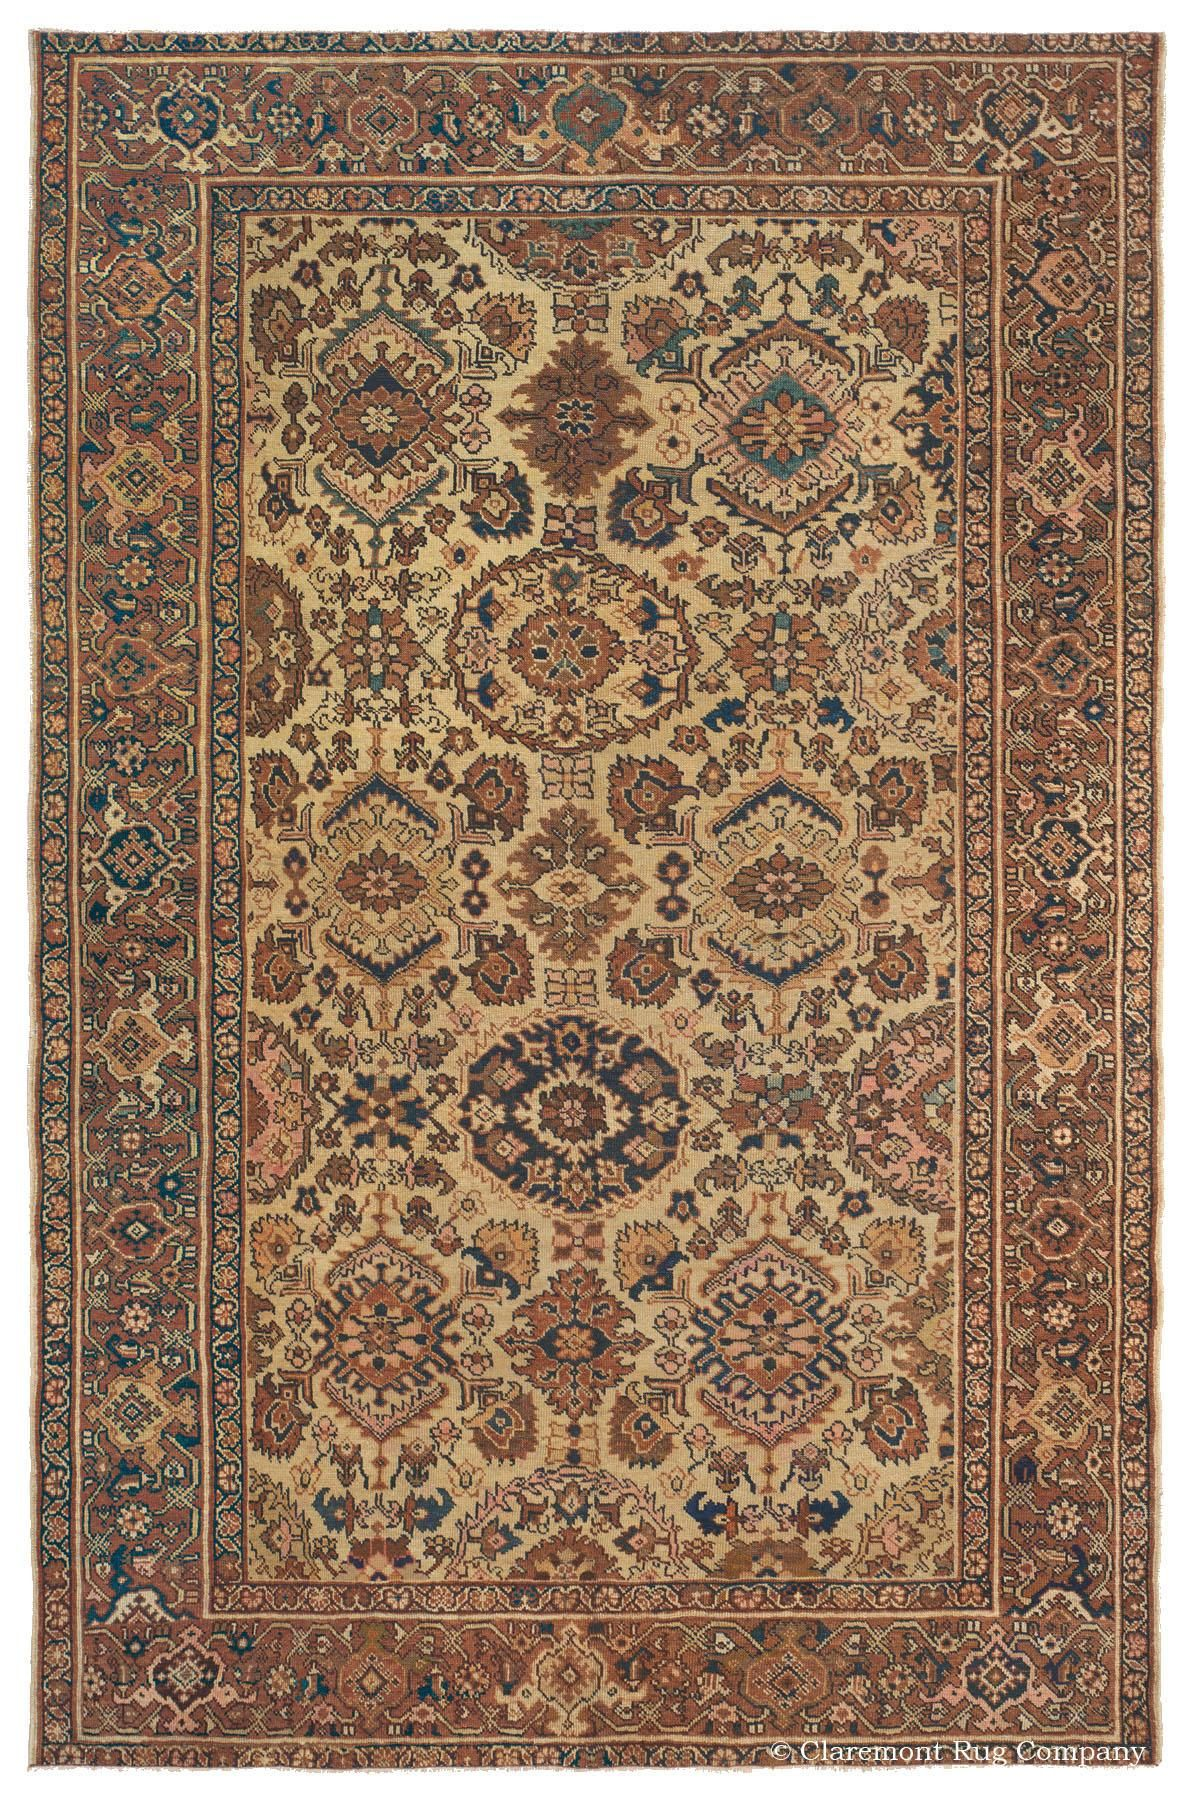 Mahal West Central Persian 6ft 9in X 10ft 8in Circa 1900 Halilar Antika